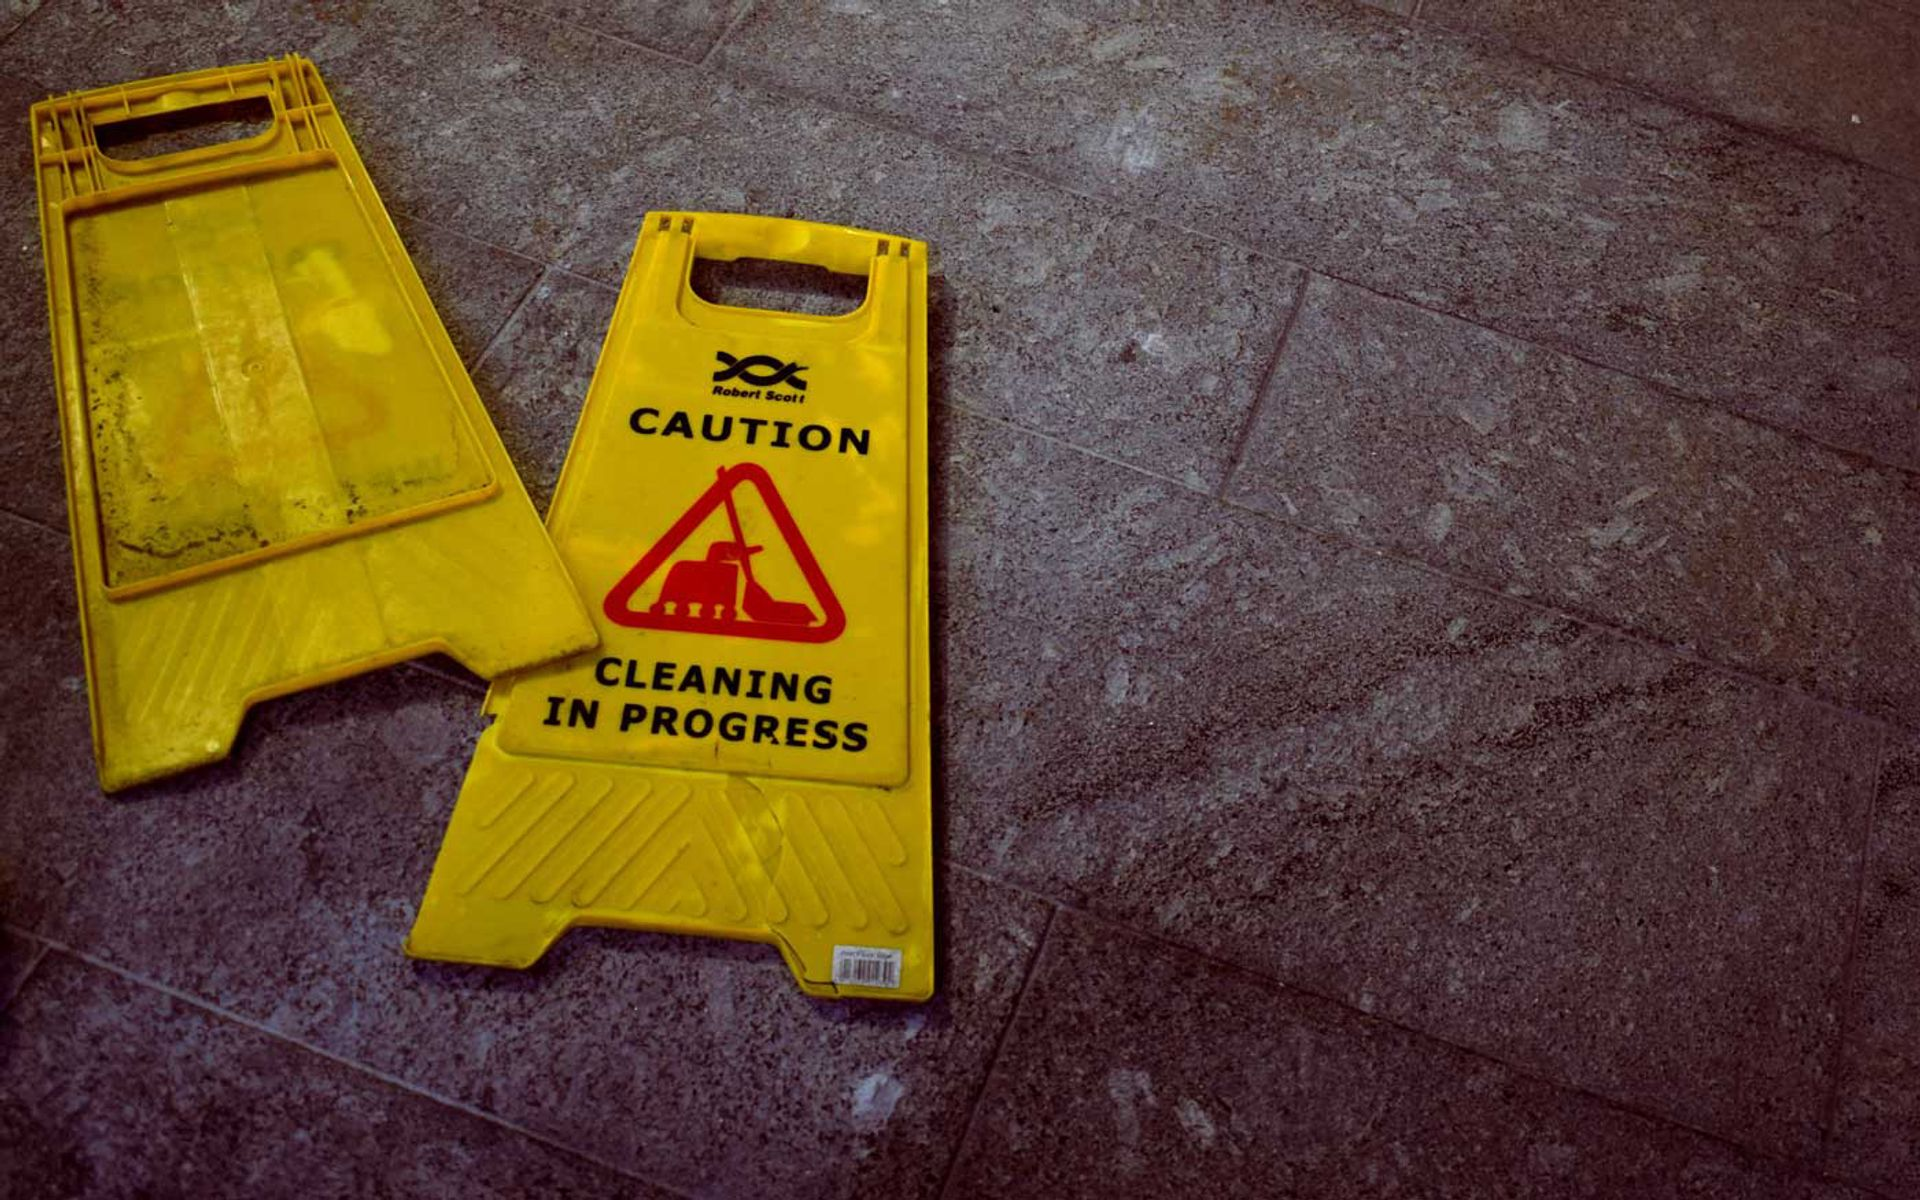 To clean or not to clean: More regulation in the market may not be the answer Oliver Hale